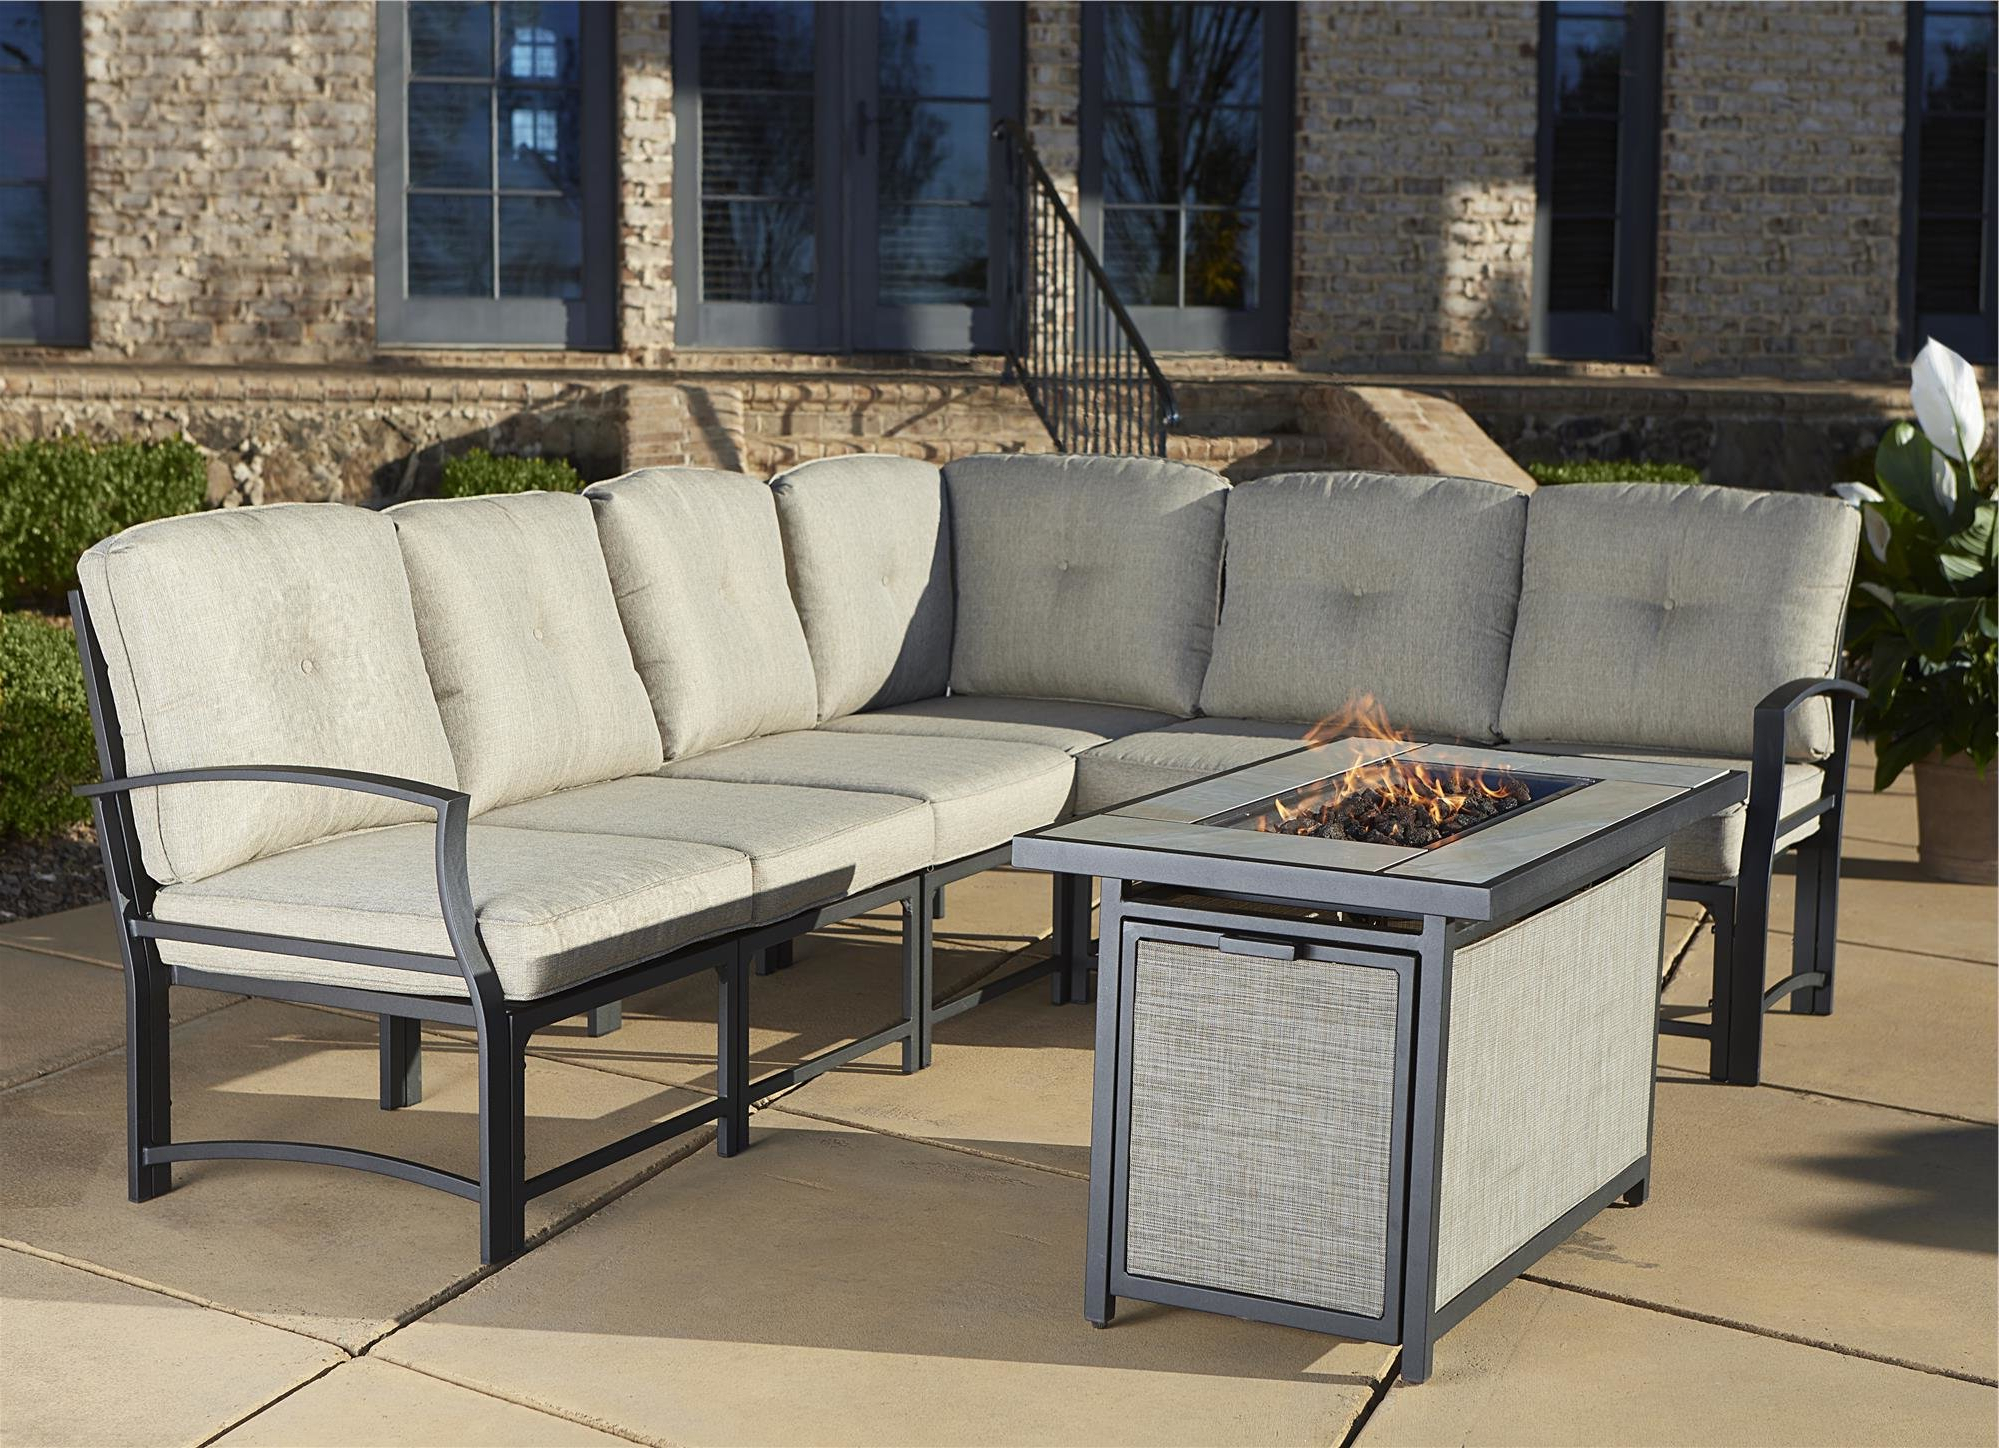 Birch Lane Intended For Well Known Purington Circular Patio Sectionals With Cushions (View 4 of 20)